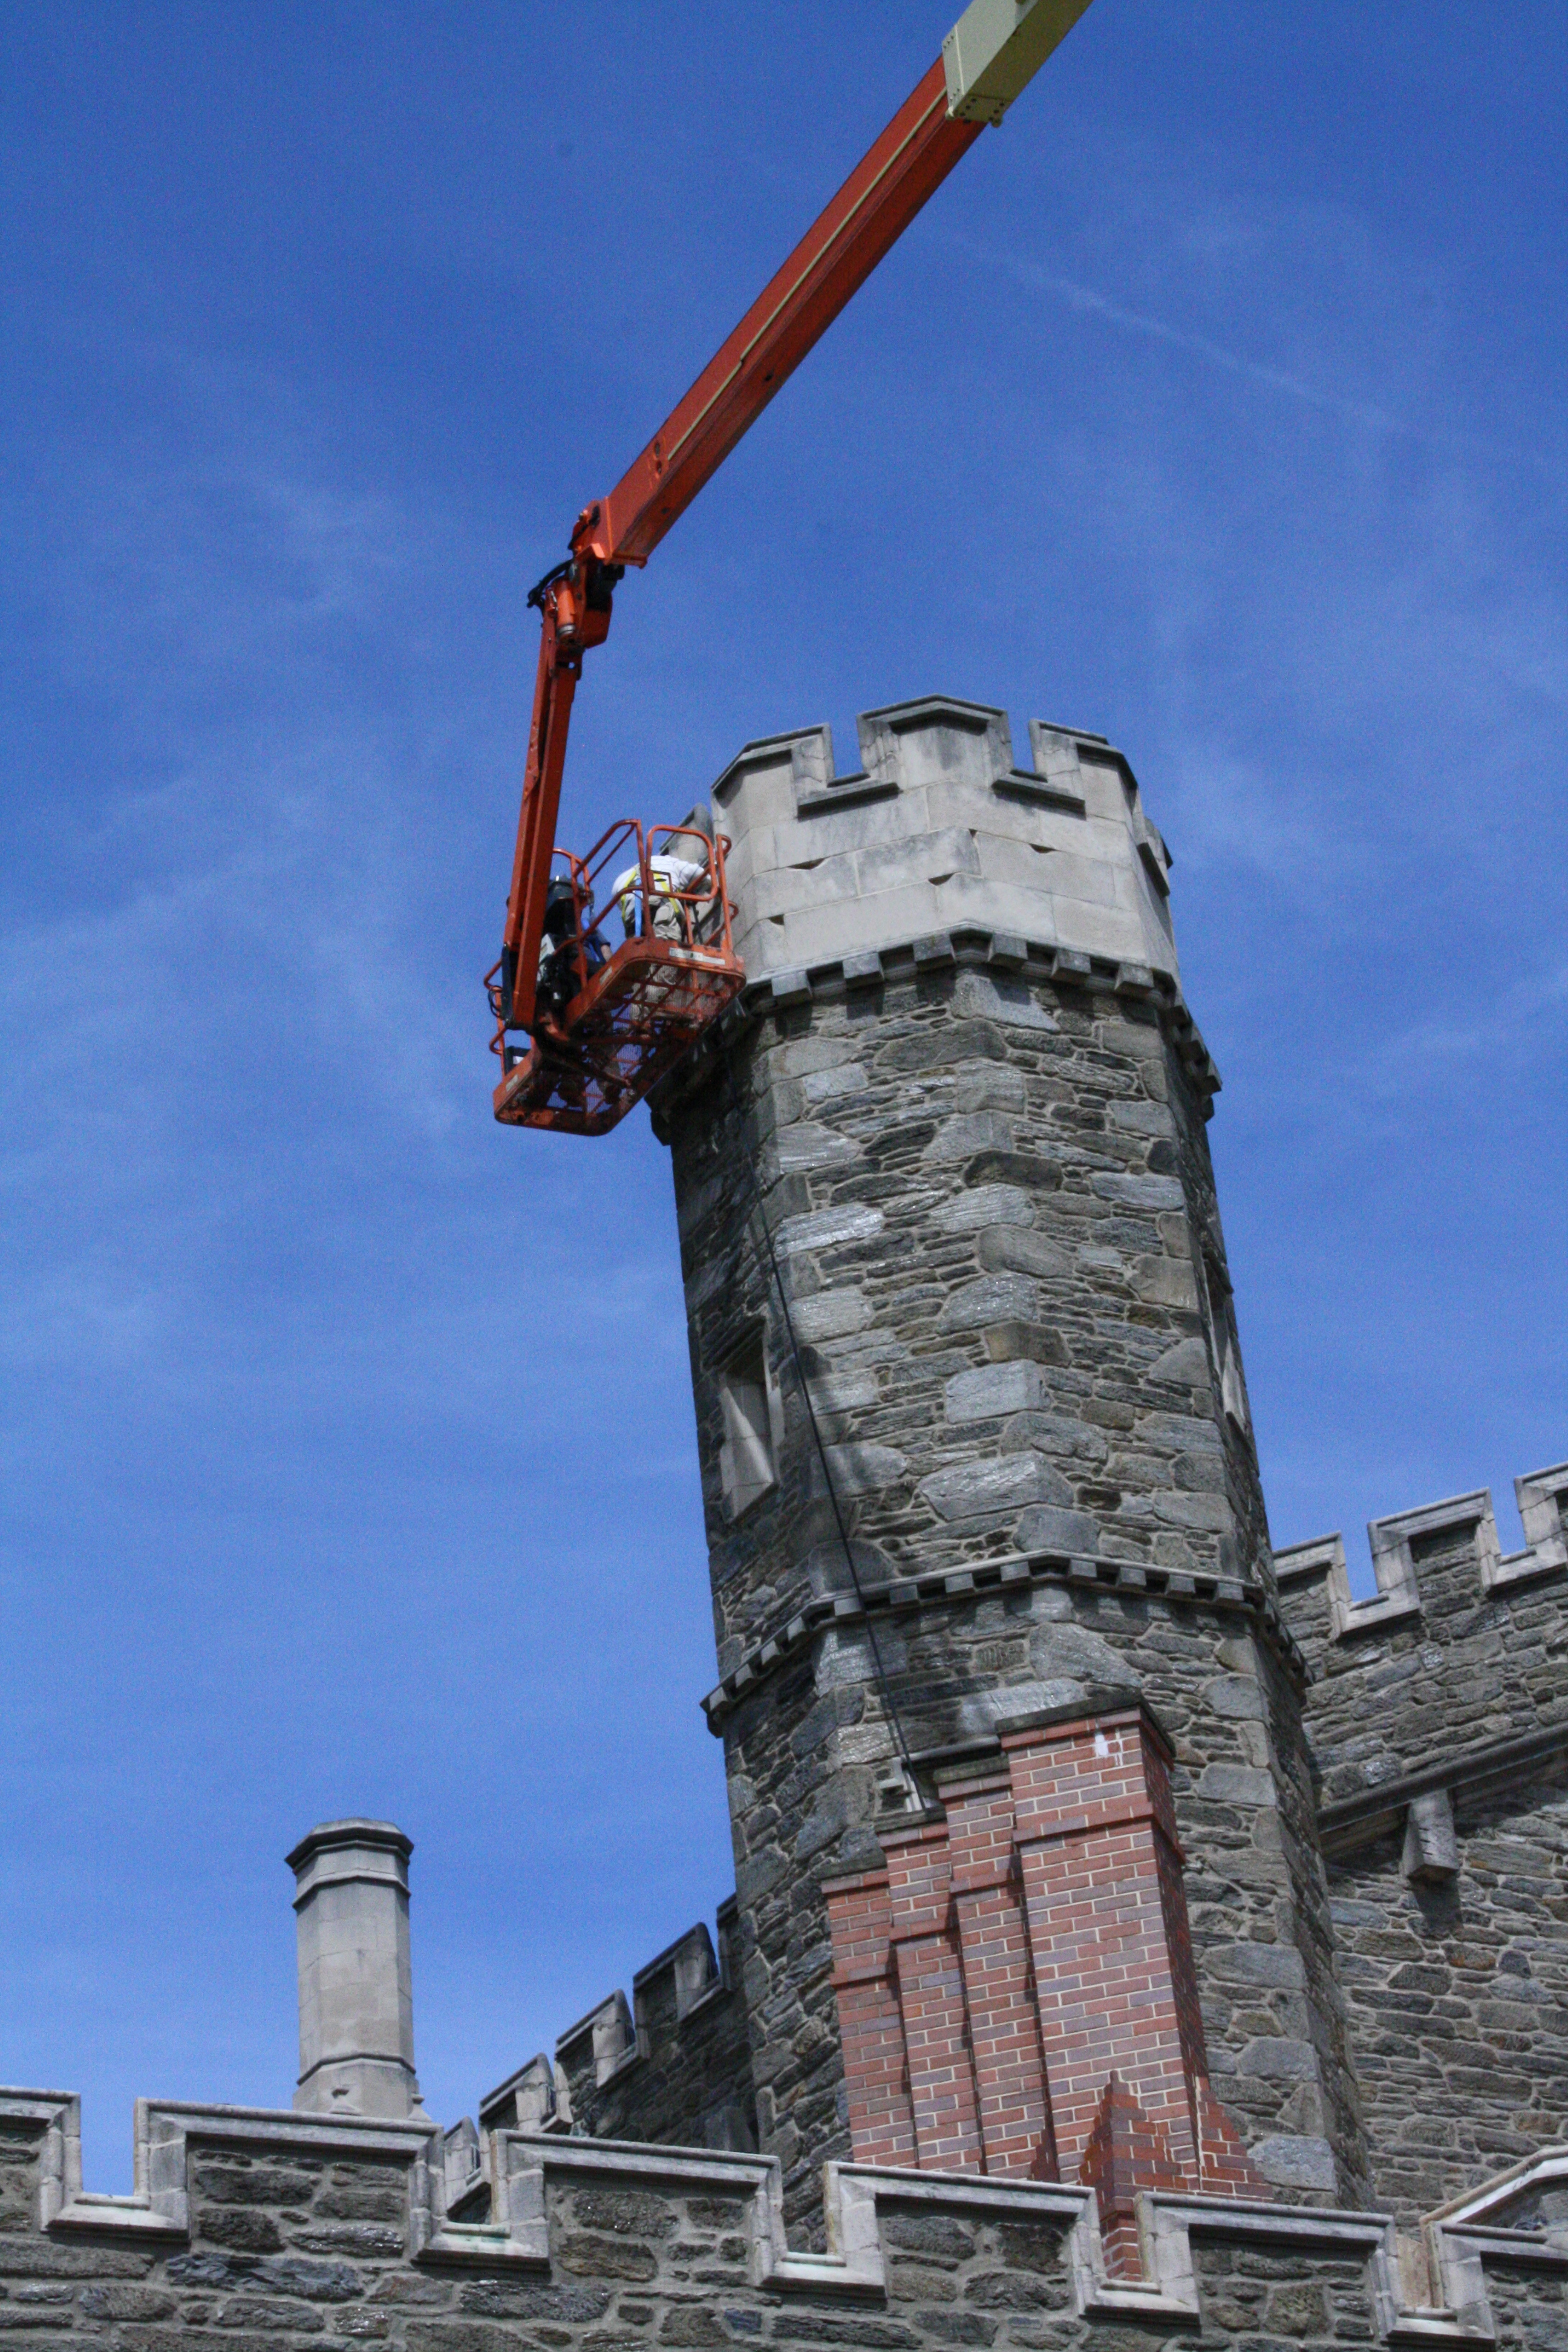 Thomas Cloister To Be Open In Time For Lantern Night